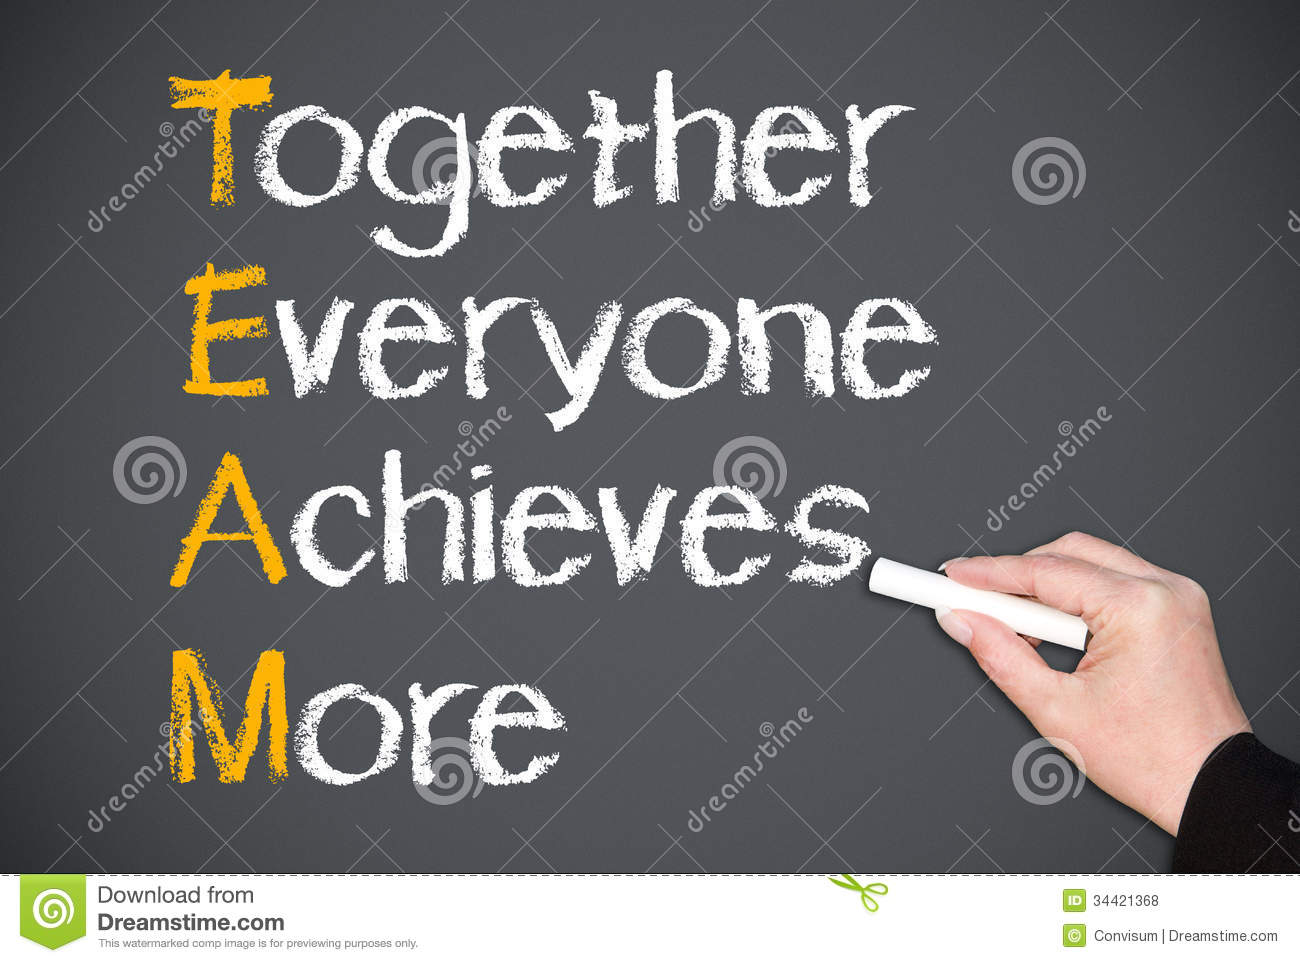 advantages and disadvantages of team work Advantages and disadvantages of teamwork teamwork is used everyday, everywhere in business organisations it is an important way of bringing people together, developing stronger bonds between members and quickly tackling large projects.